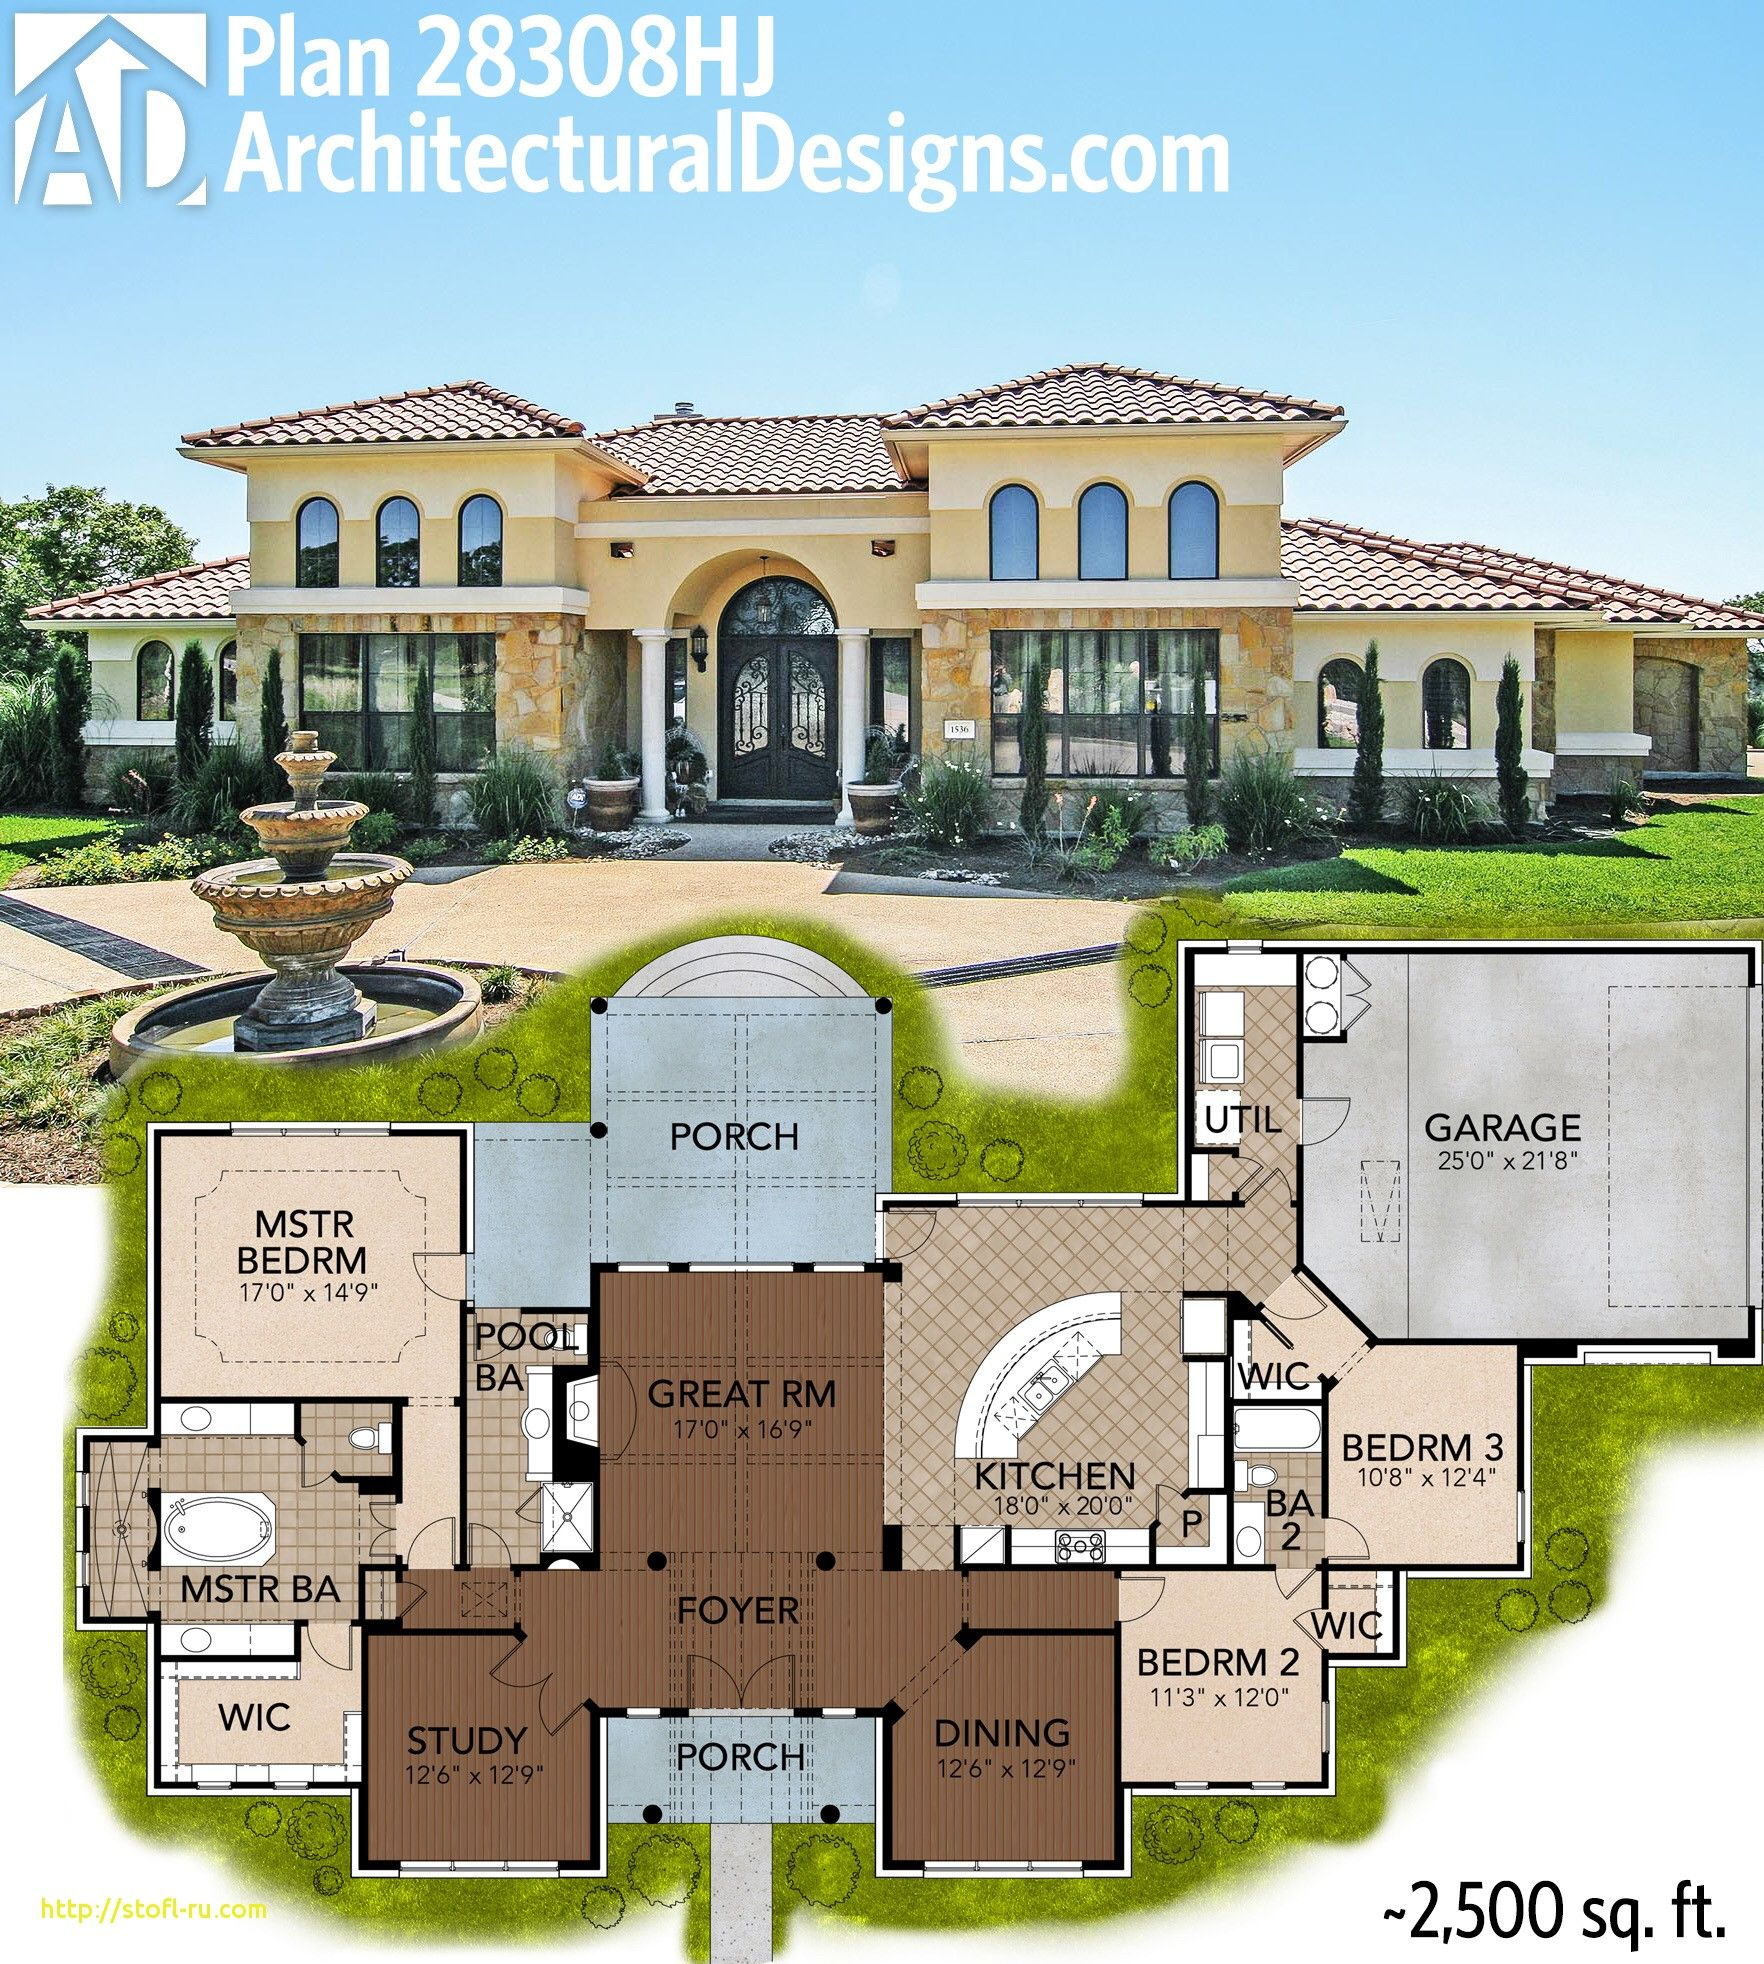 50++ 2500 sq ft modern house plans ideas in 2021